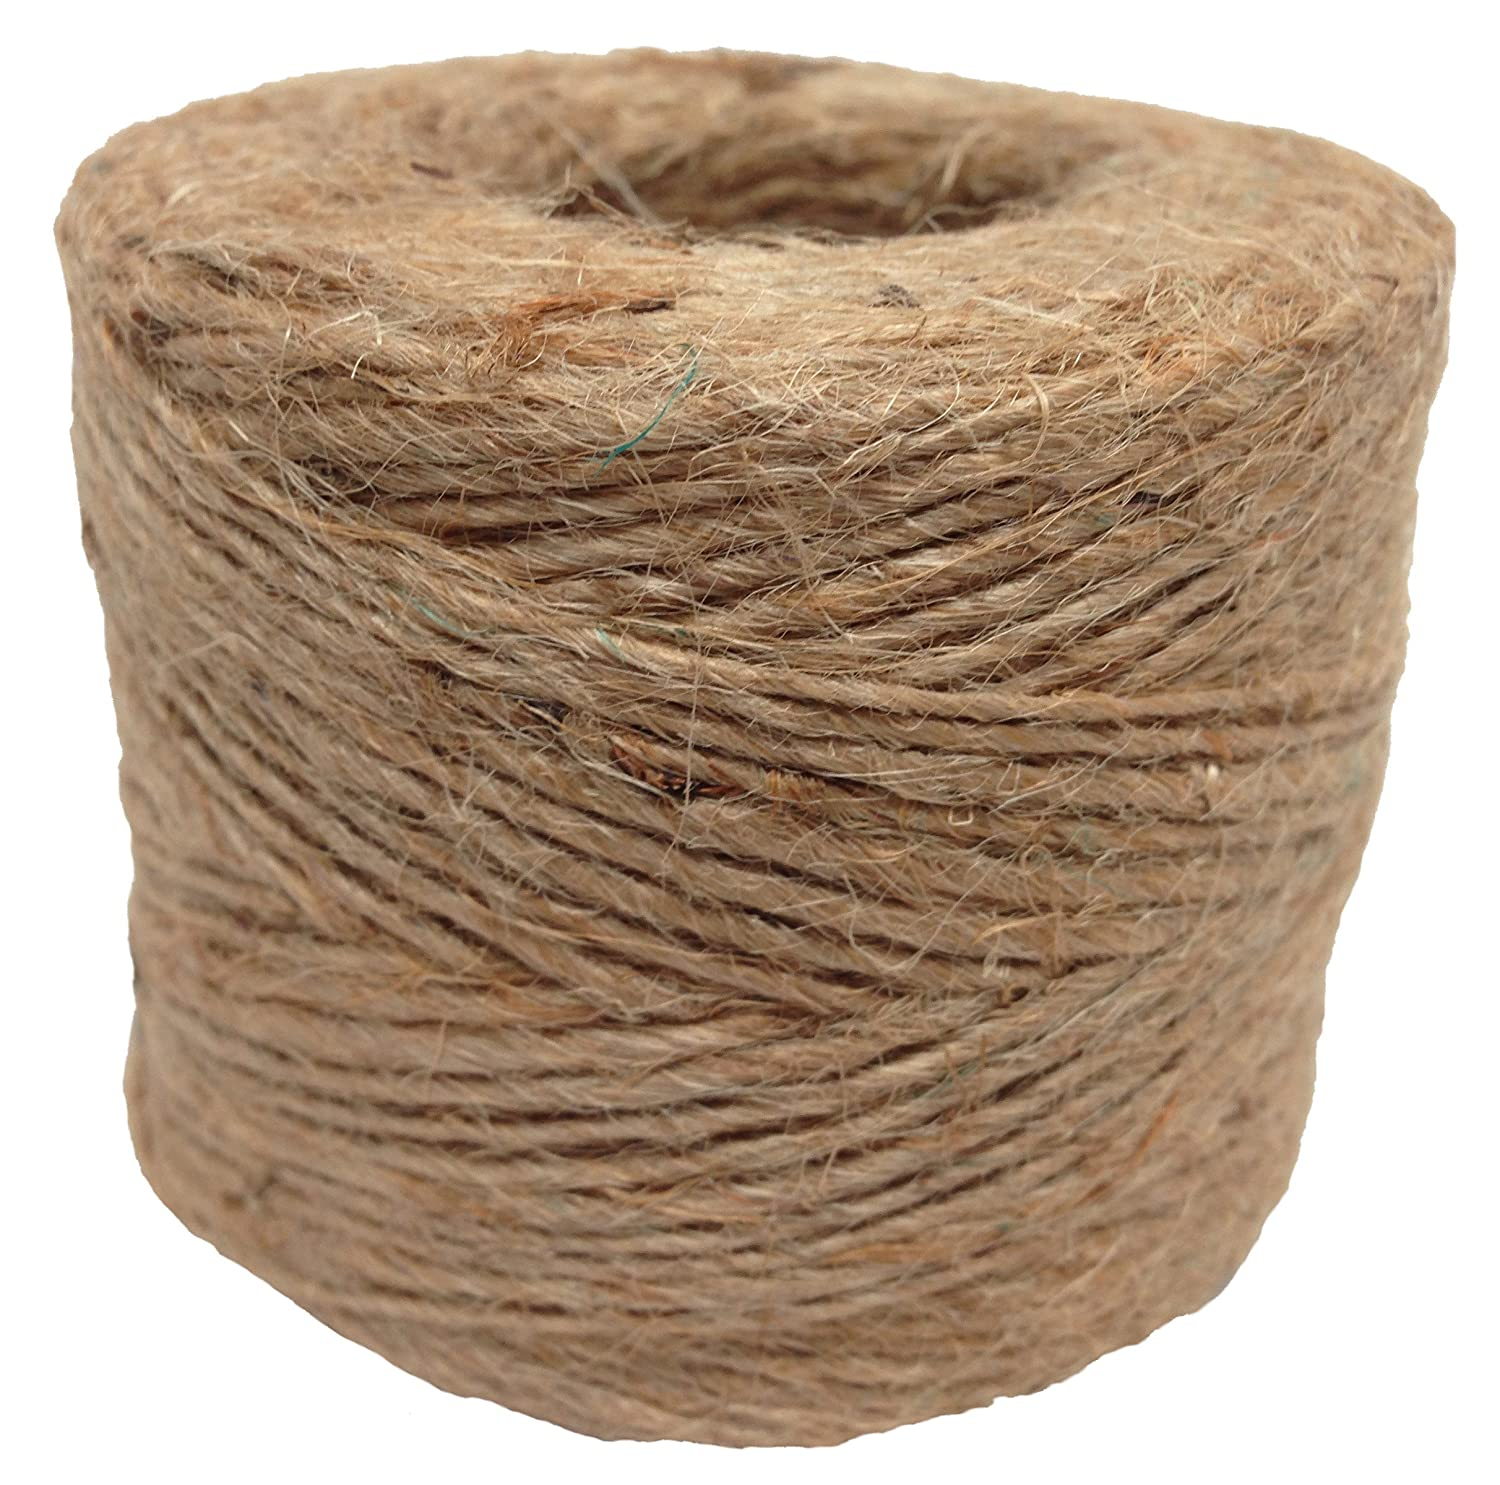 DIY Projects - SGT KNOTS Camping Jute Twine 100/% All-Natural Jute Fibers All-Purpose Crafting Twine Emergency Fire Starter String 1 Pack 285 feet Gardening More for Home Improvement